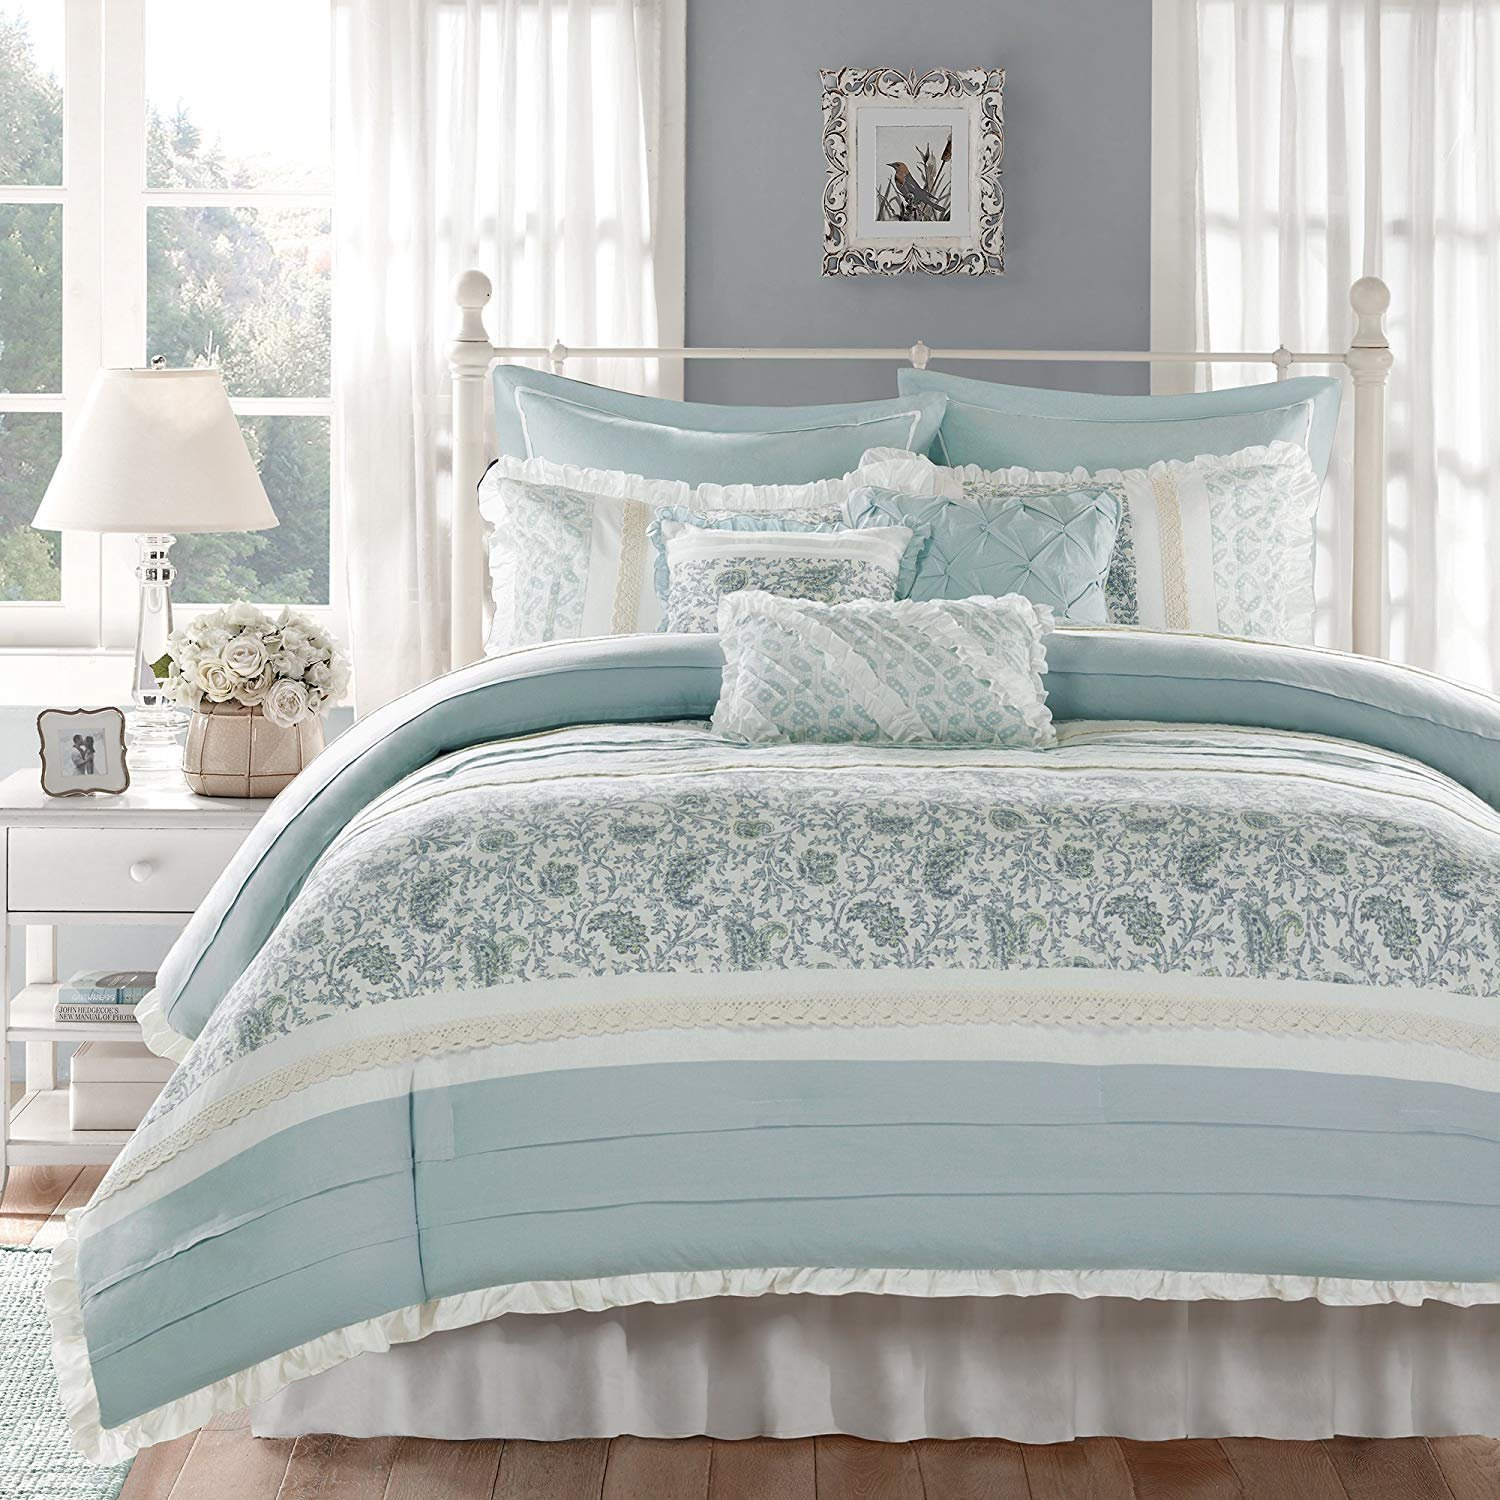 Madison Park Dawn Queen Size Bed Comforter Set Bed In A Bag - Aqua , Floral Shabby Chic – 9 Pieces Bedding Sets